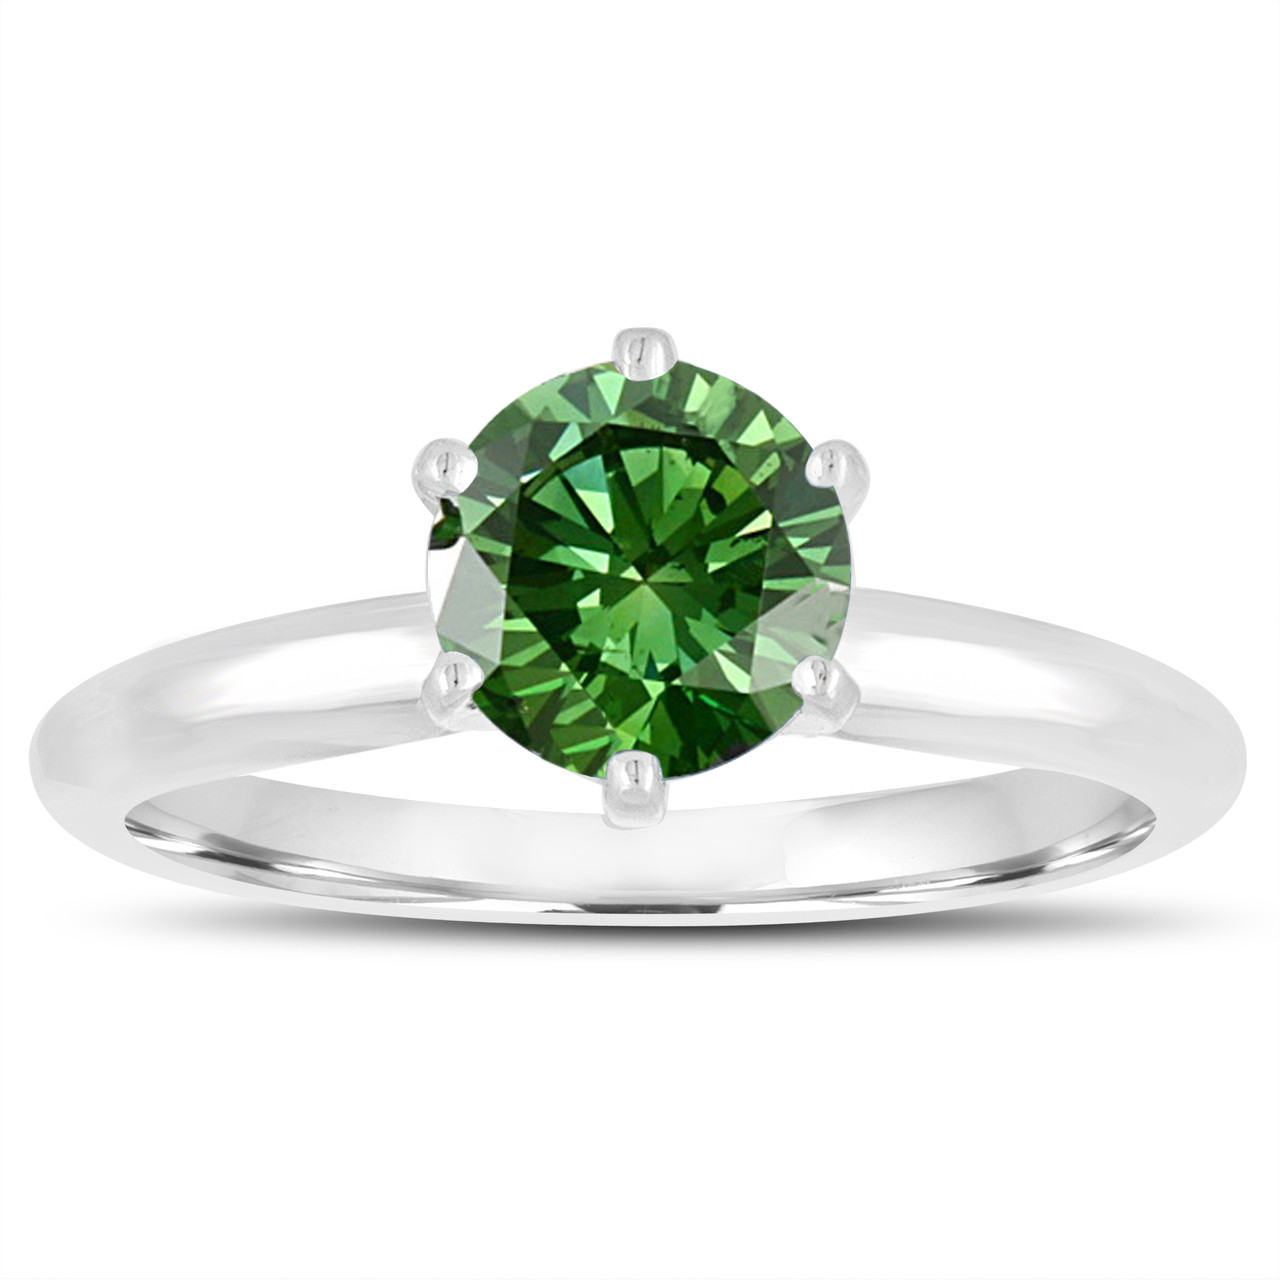 1 00 Carat Green Diamond Solitaire Engagement Ring 6 Prong